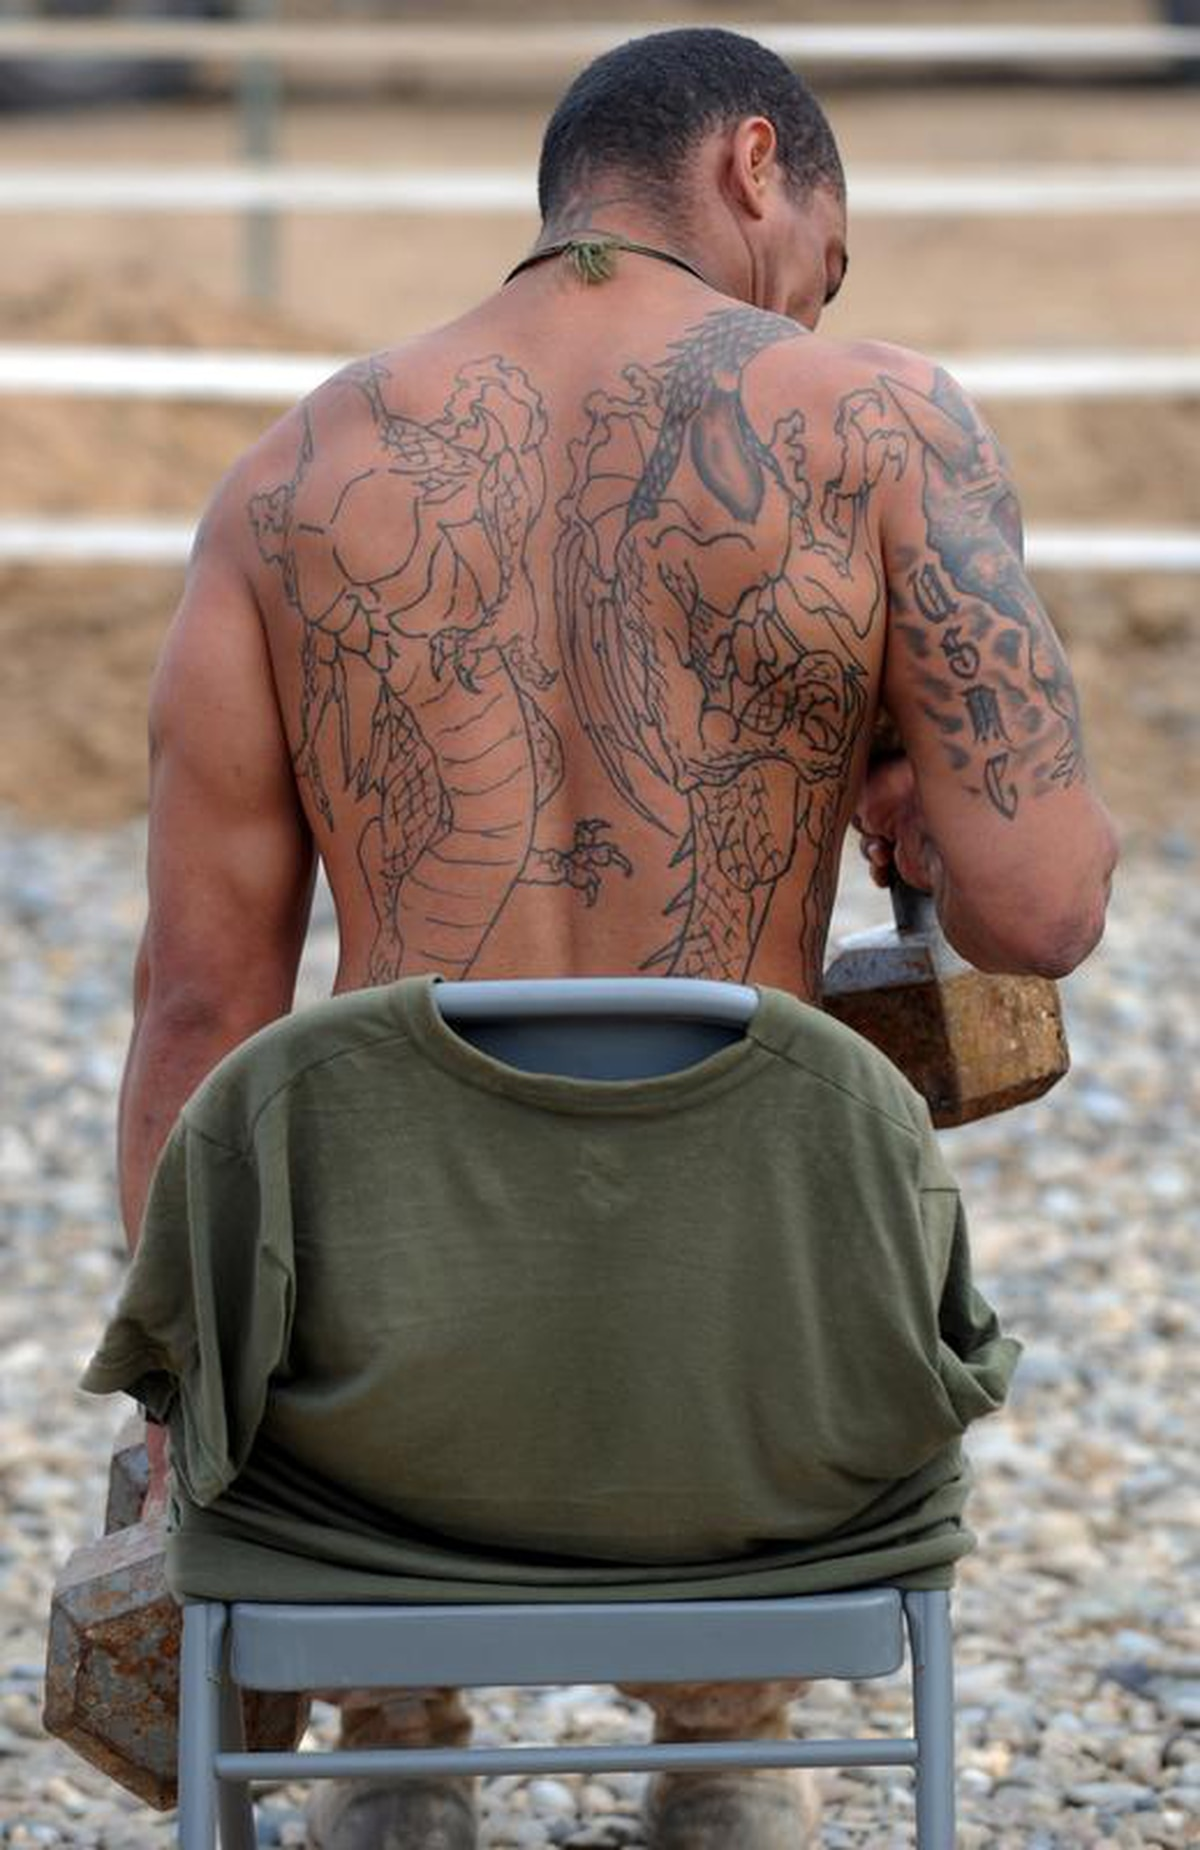 Marines Attending Resident Pme To Be Screened For Tattoos